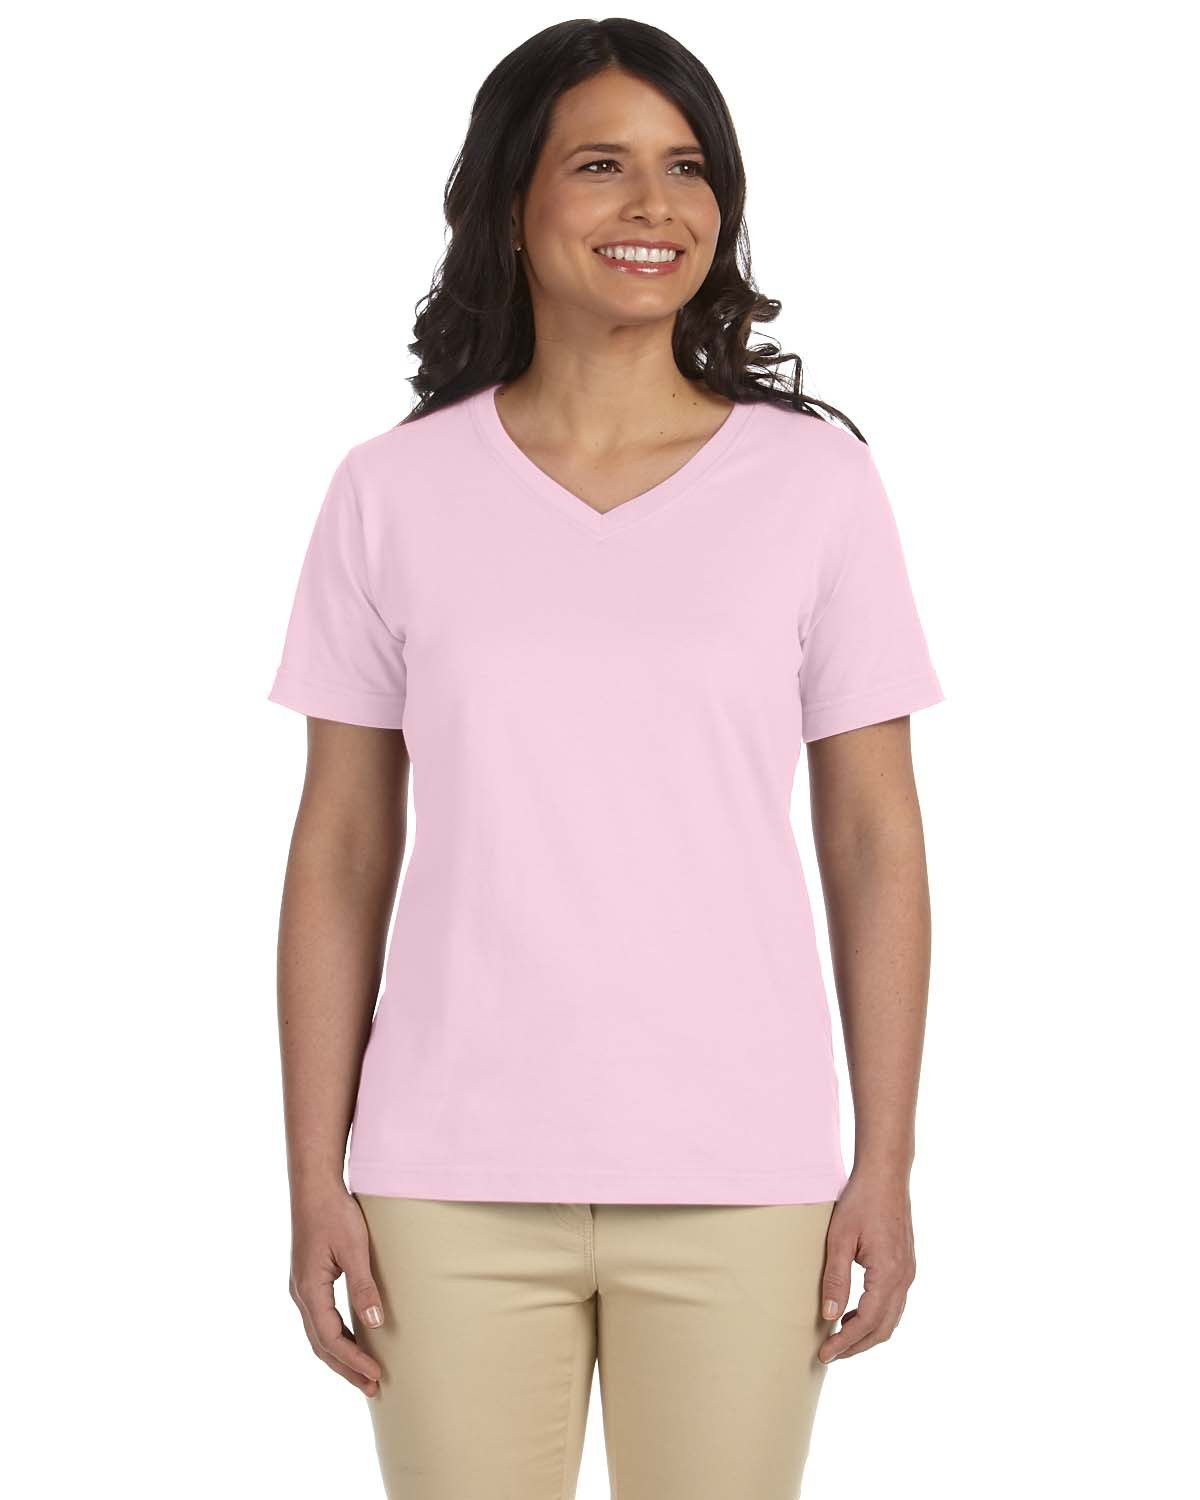 LAT Ladies' Premium Jersey V-Neck T-Shirt PINK